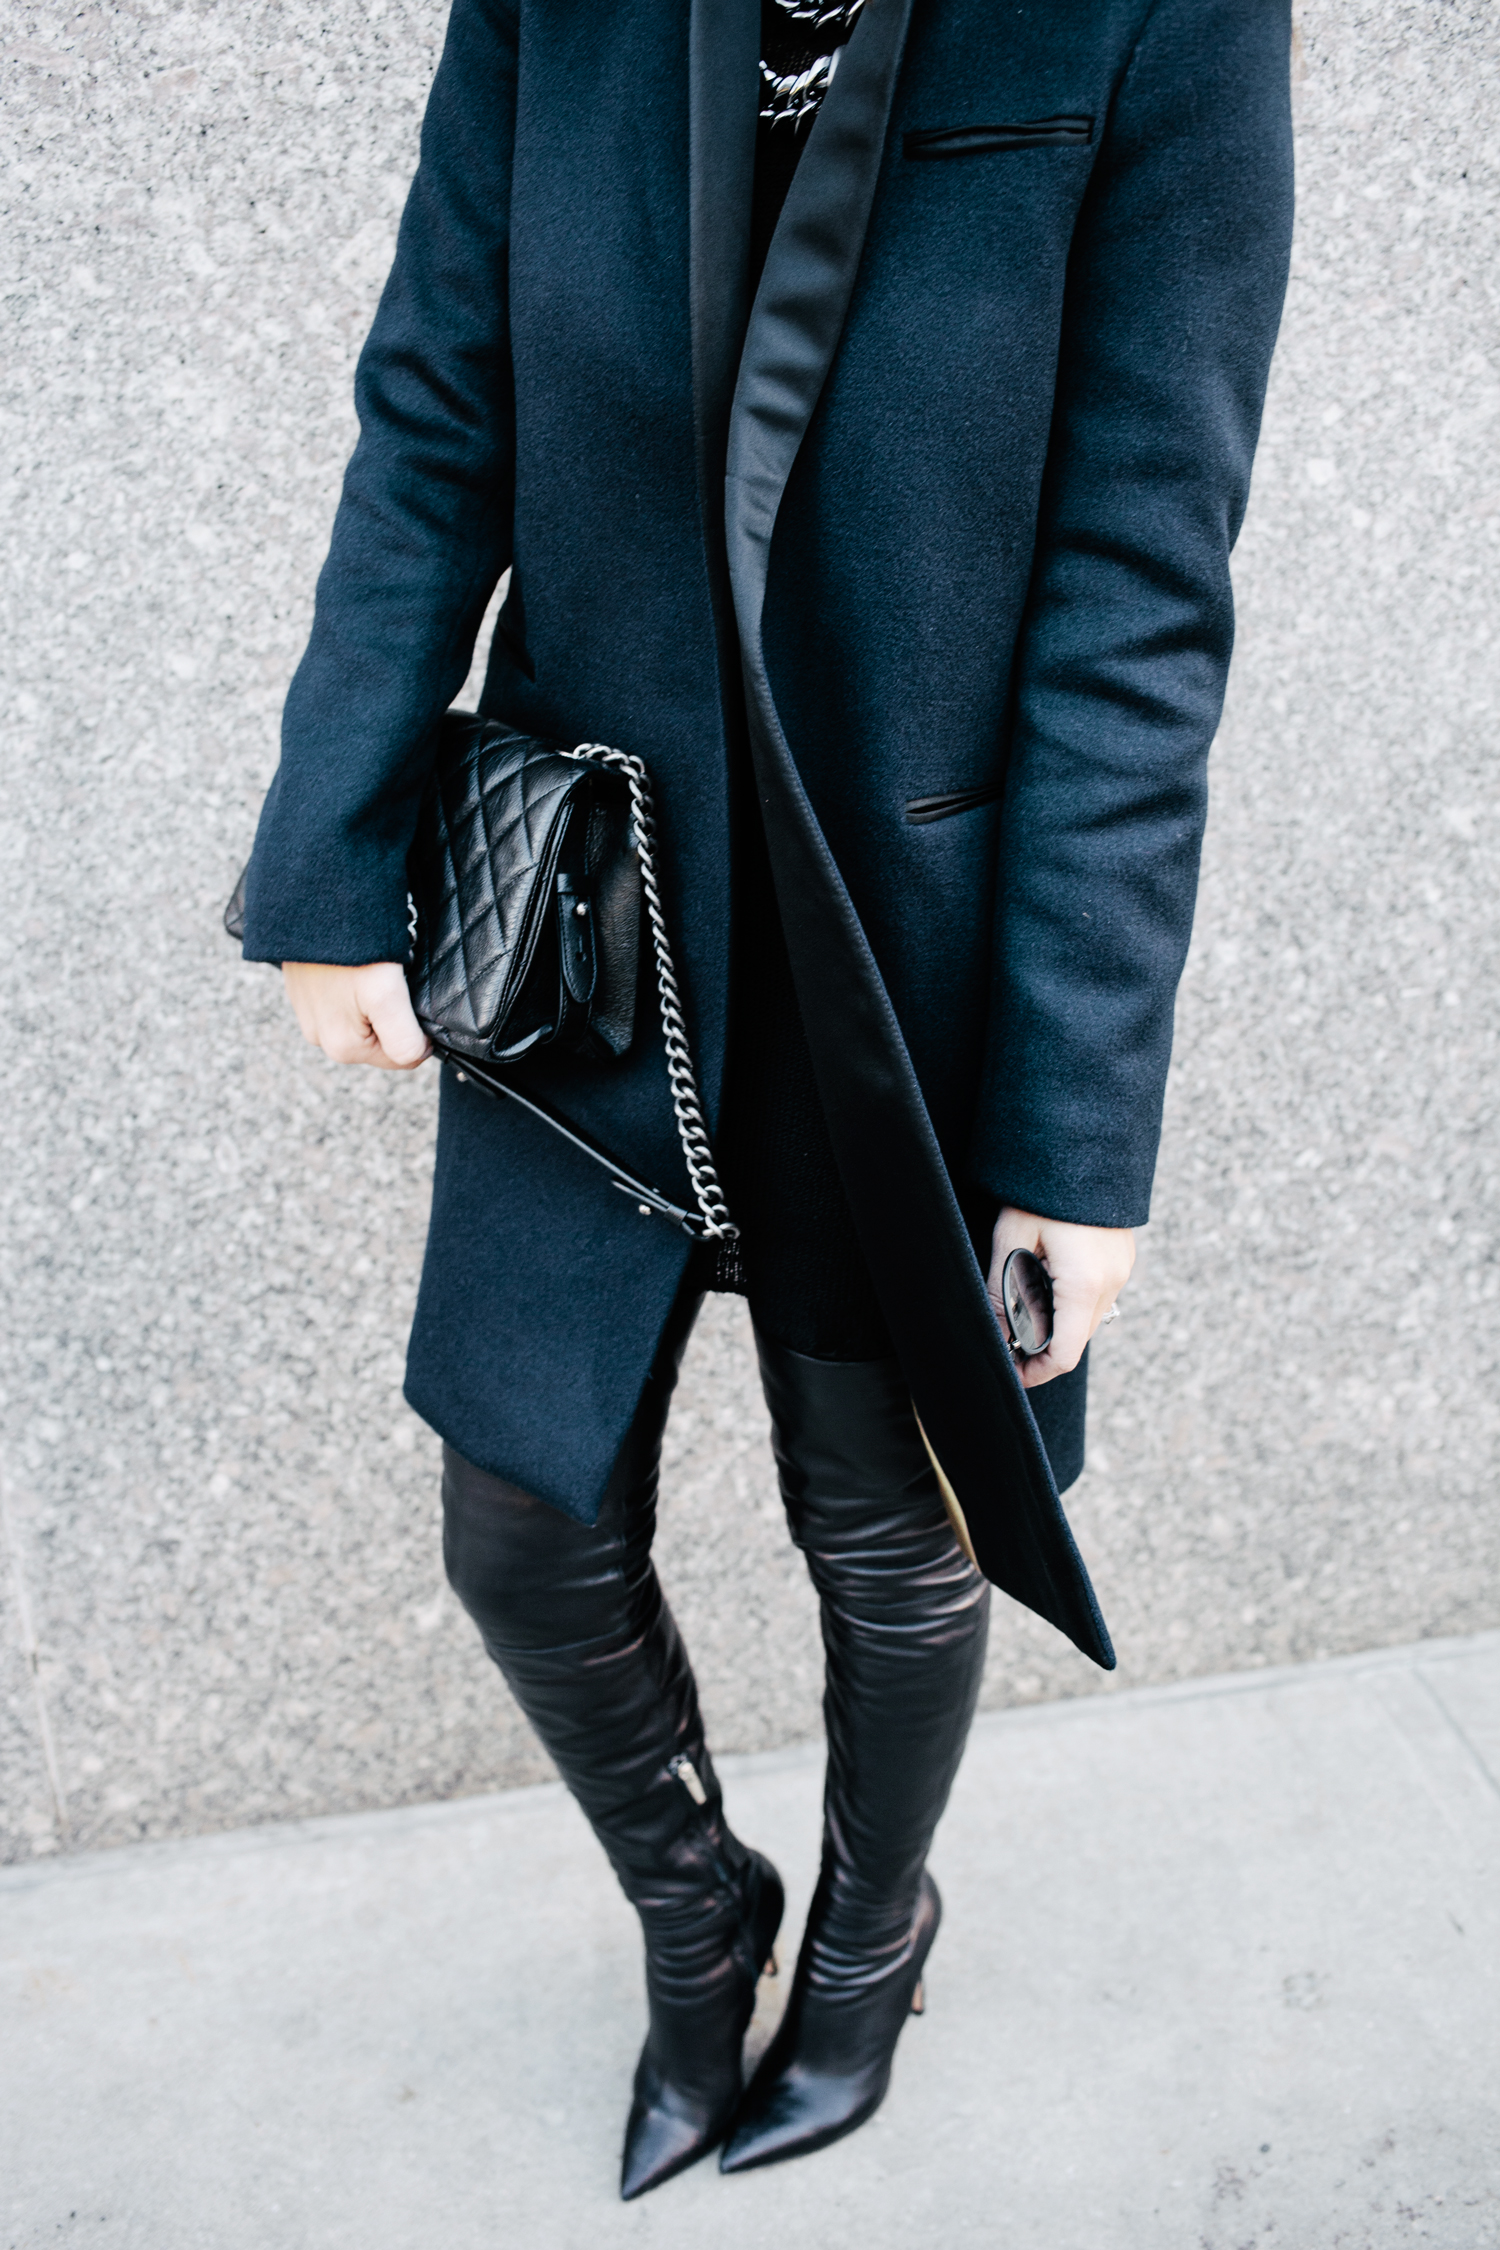 Lafayette 148 coat and leather leggings